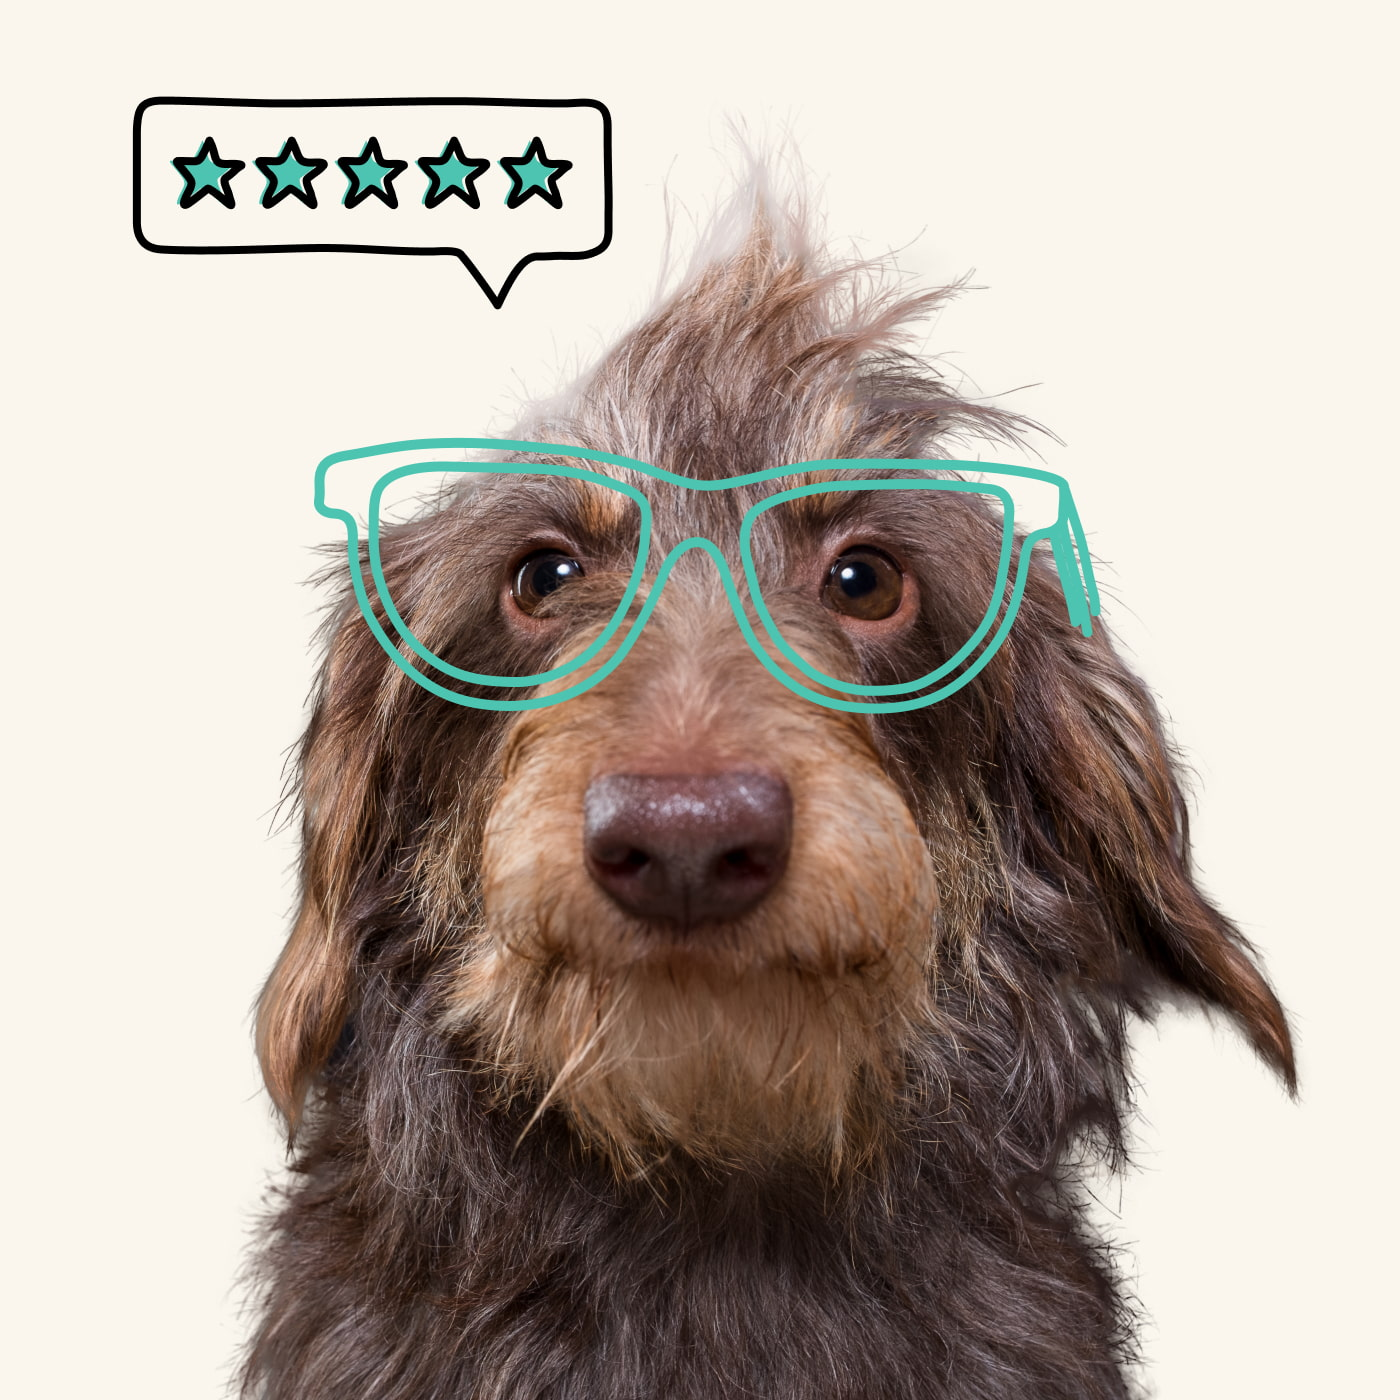 A small fluffy dog with nerdy glasses gives a 5 star review